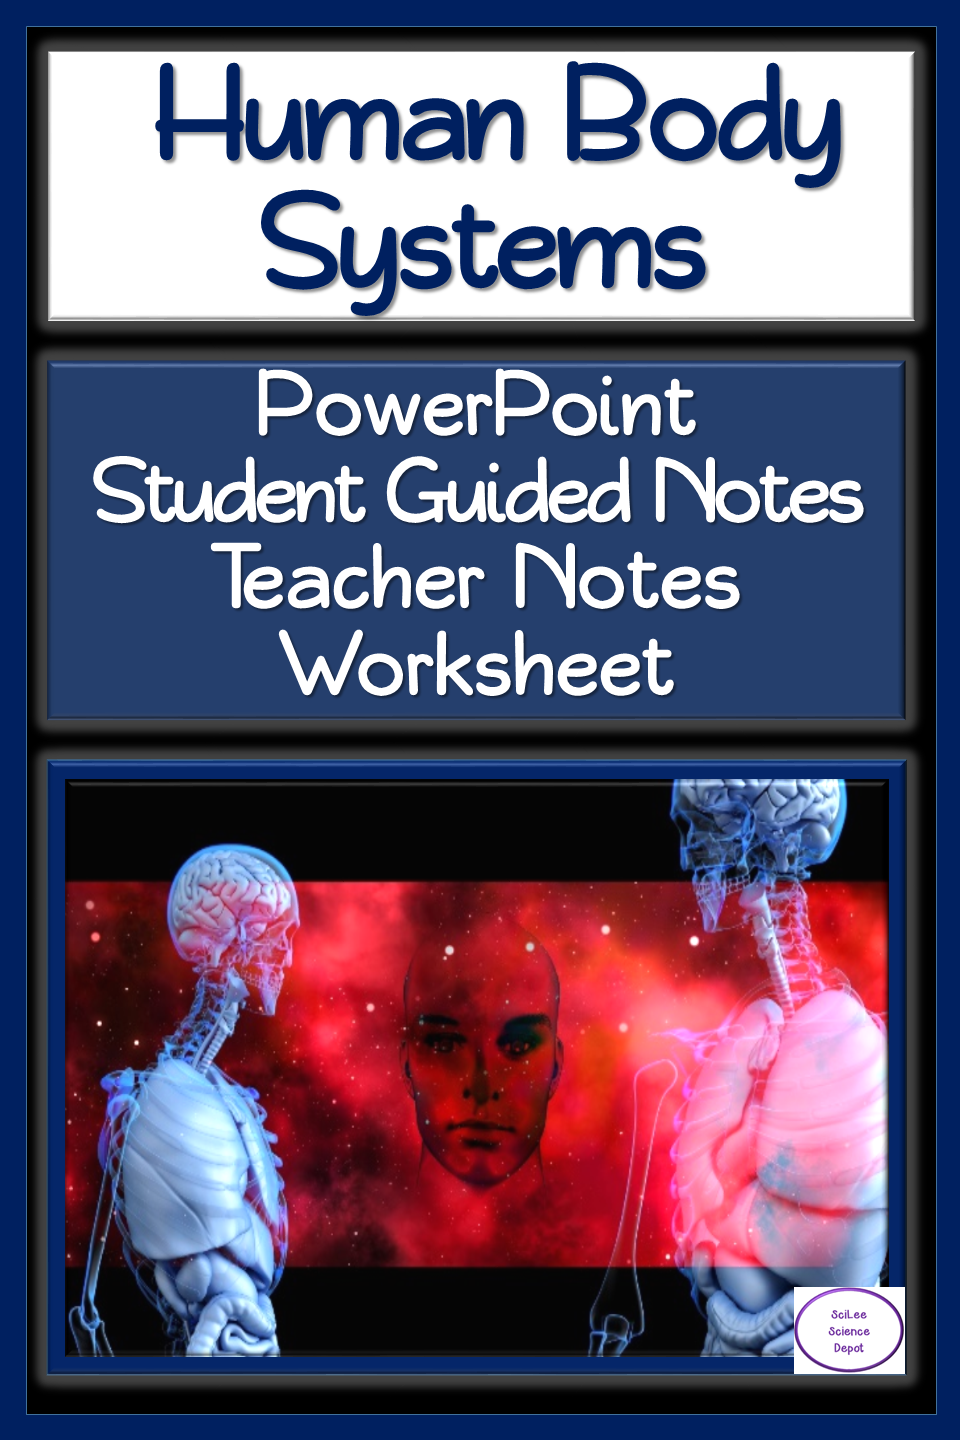 Human Body Systems Lesson Powerpoint Guided Notes Worksheet Human Body Systems Body Systems Lessons Body Systems